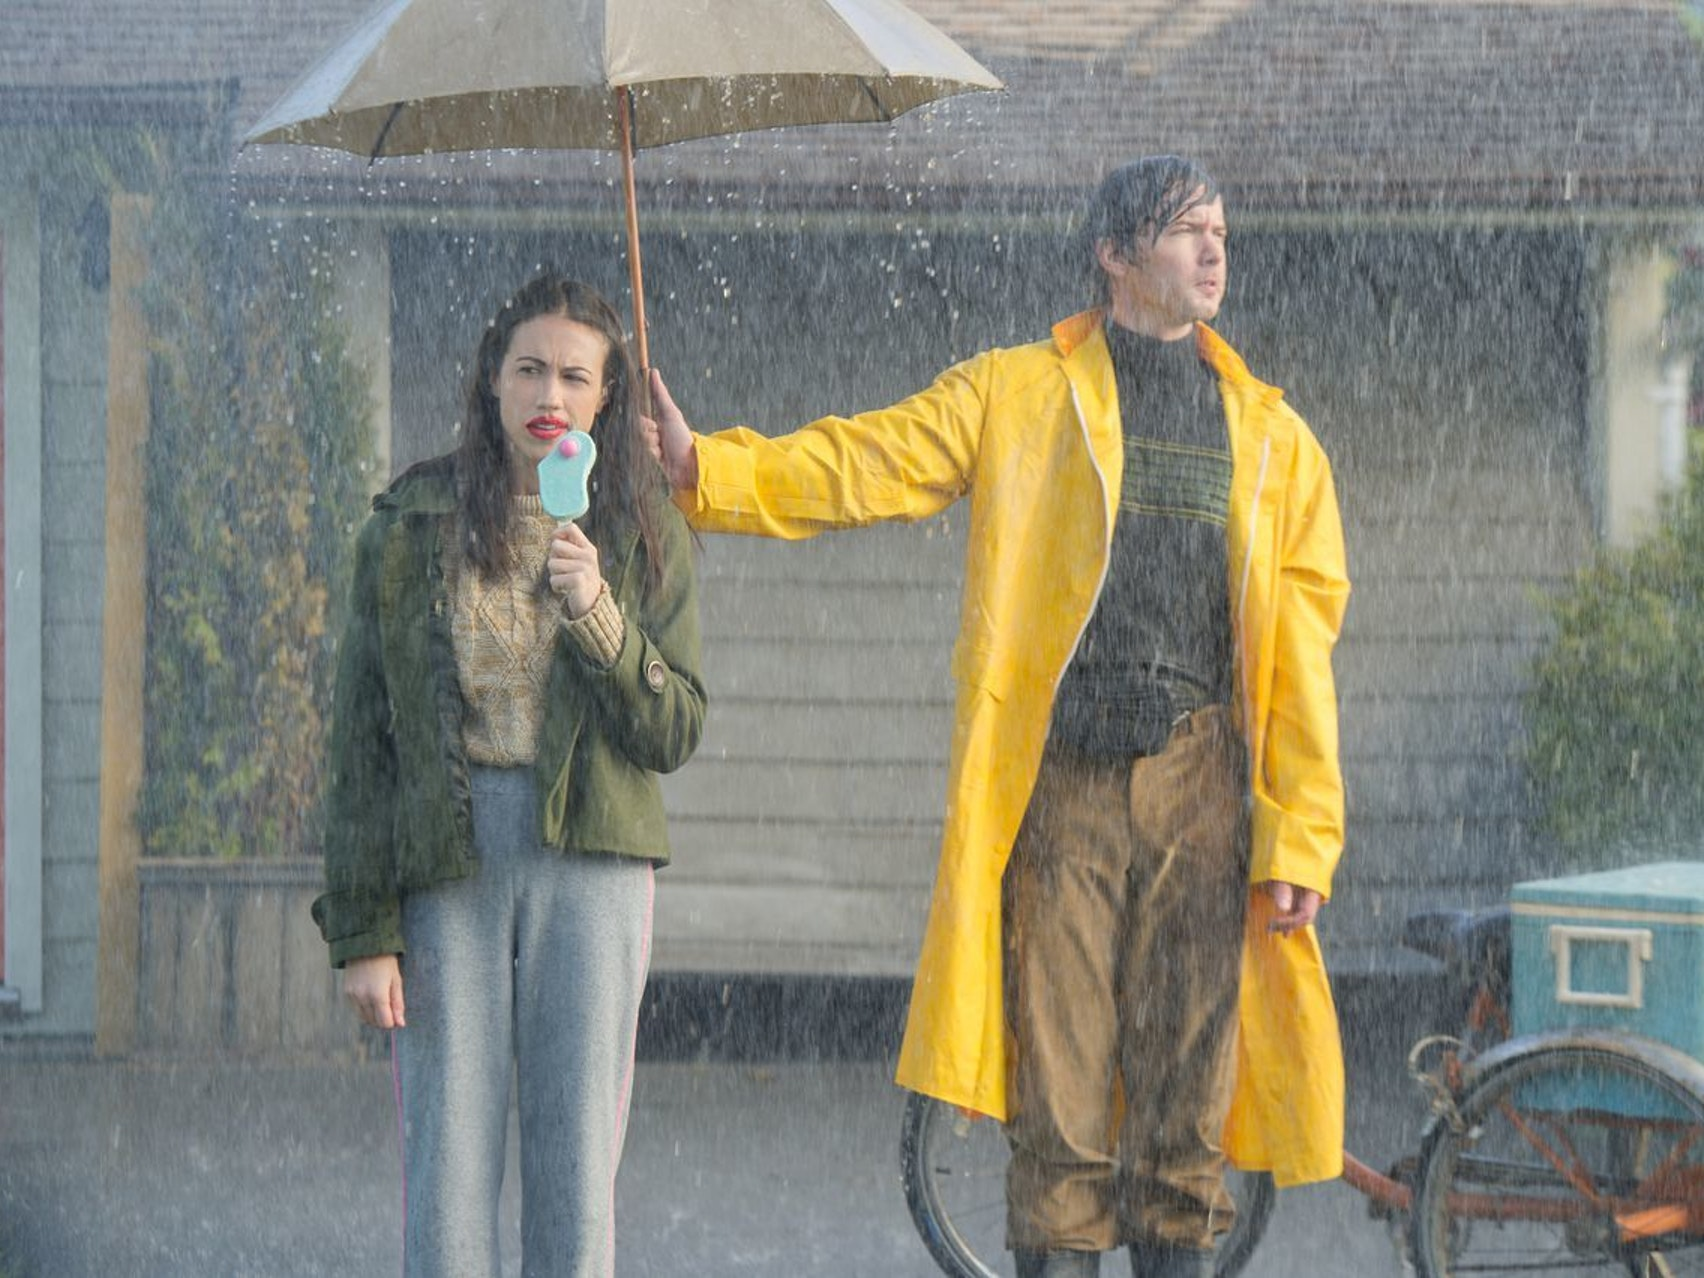 'Haters Back Off!' Is a Tragedy, Not a Comedy